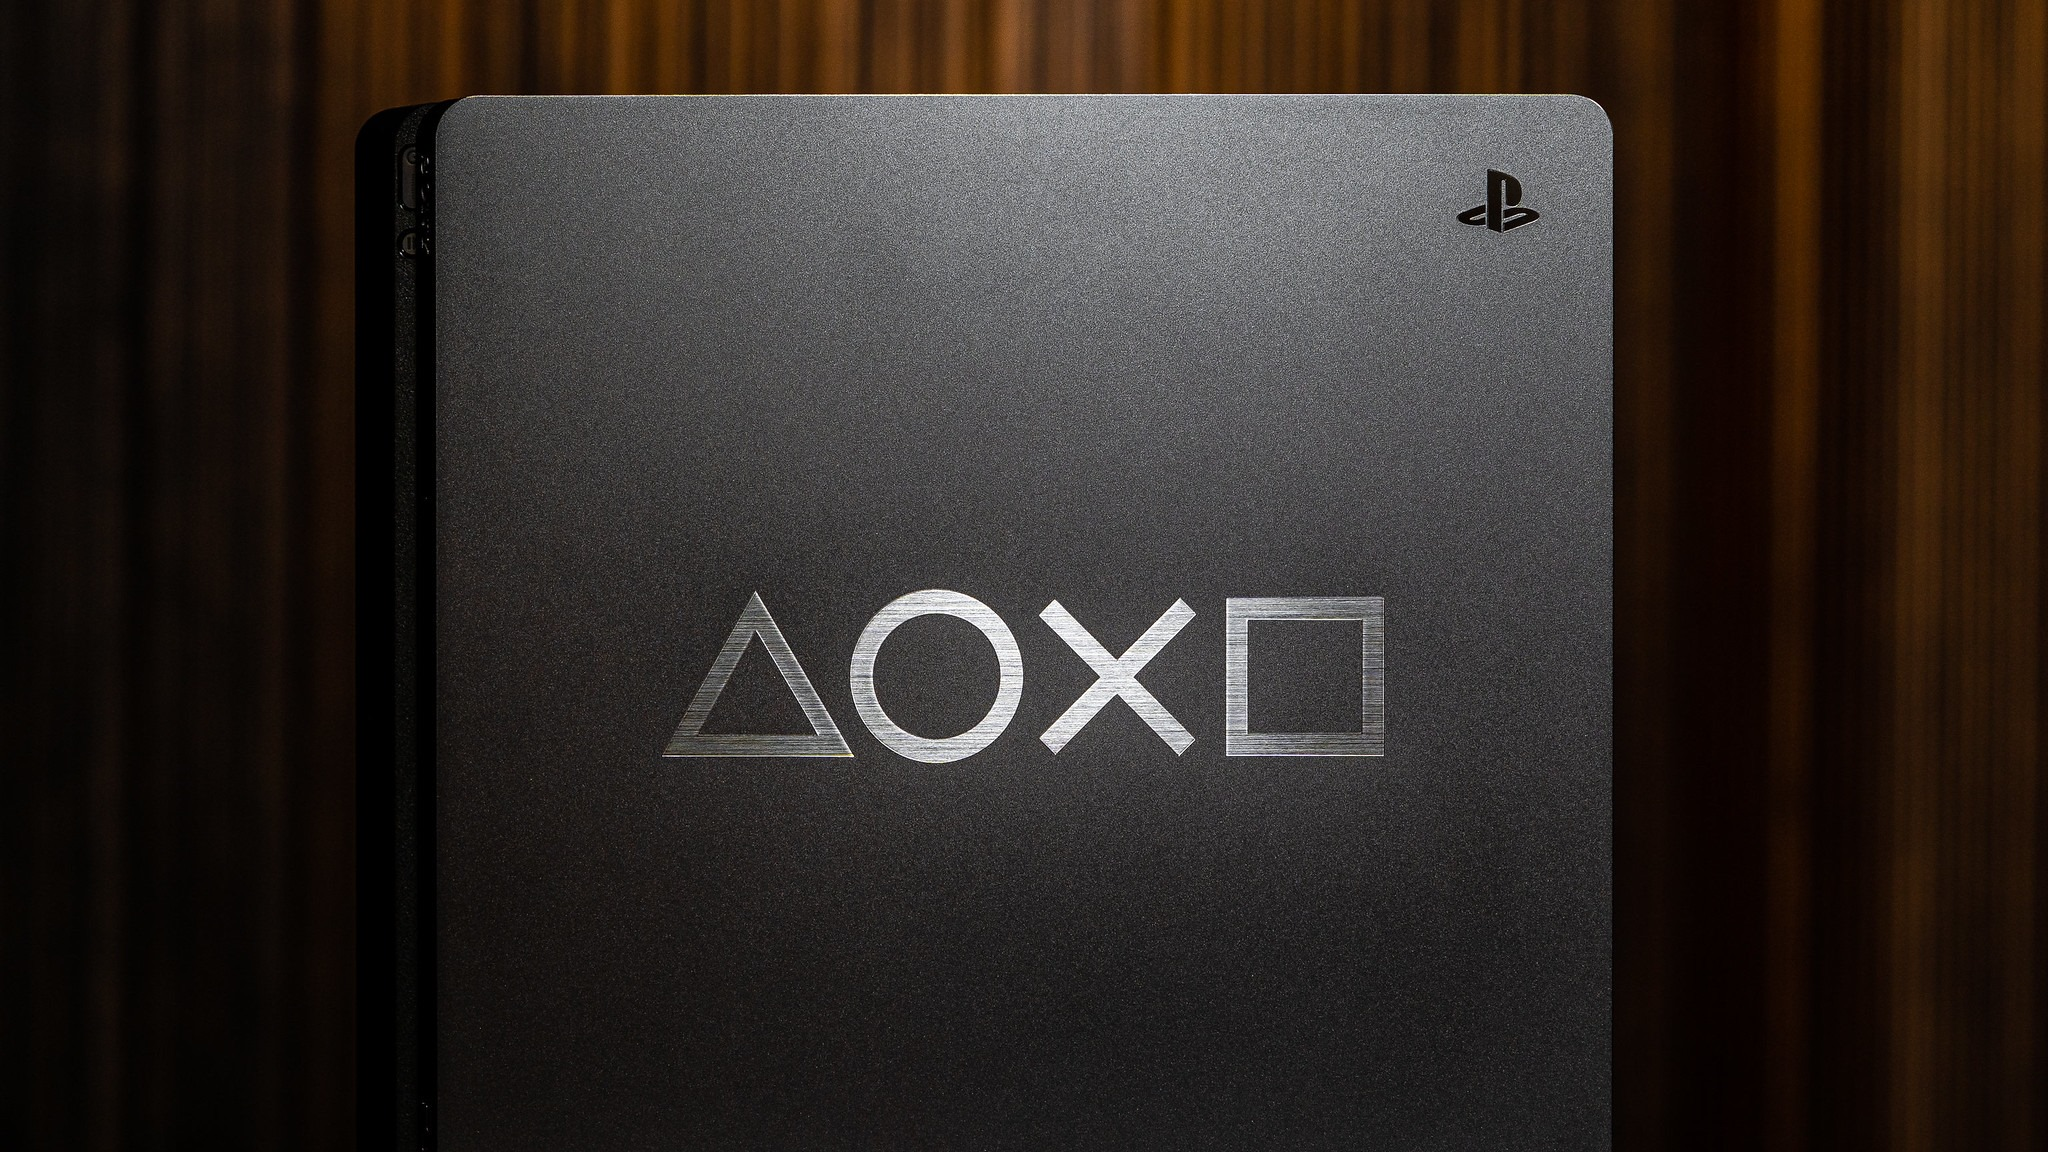 A picture of a very nice PS4 console. Nice moody lighting.